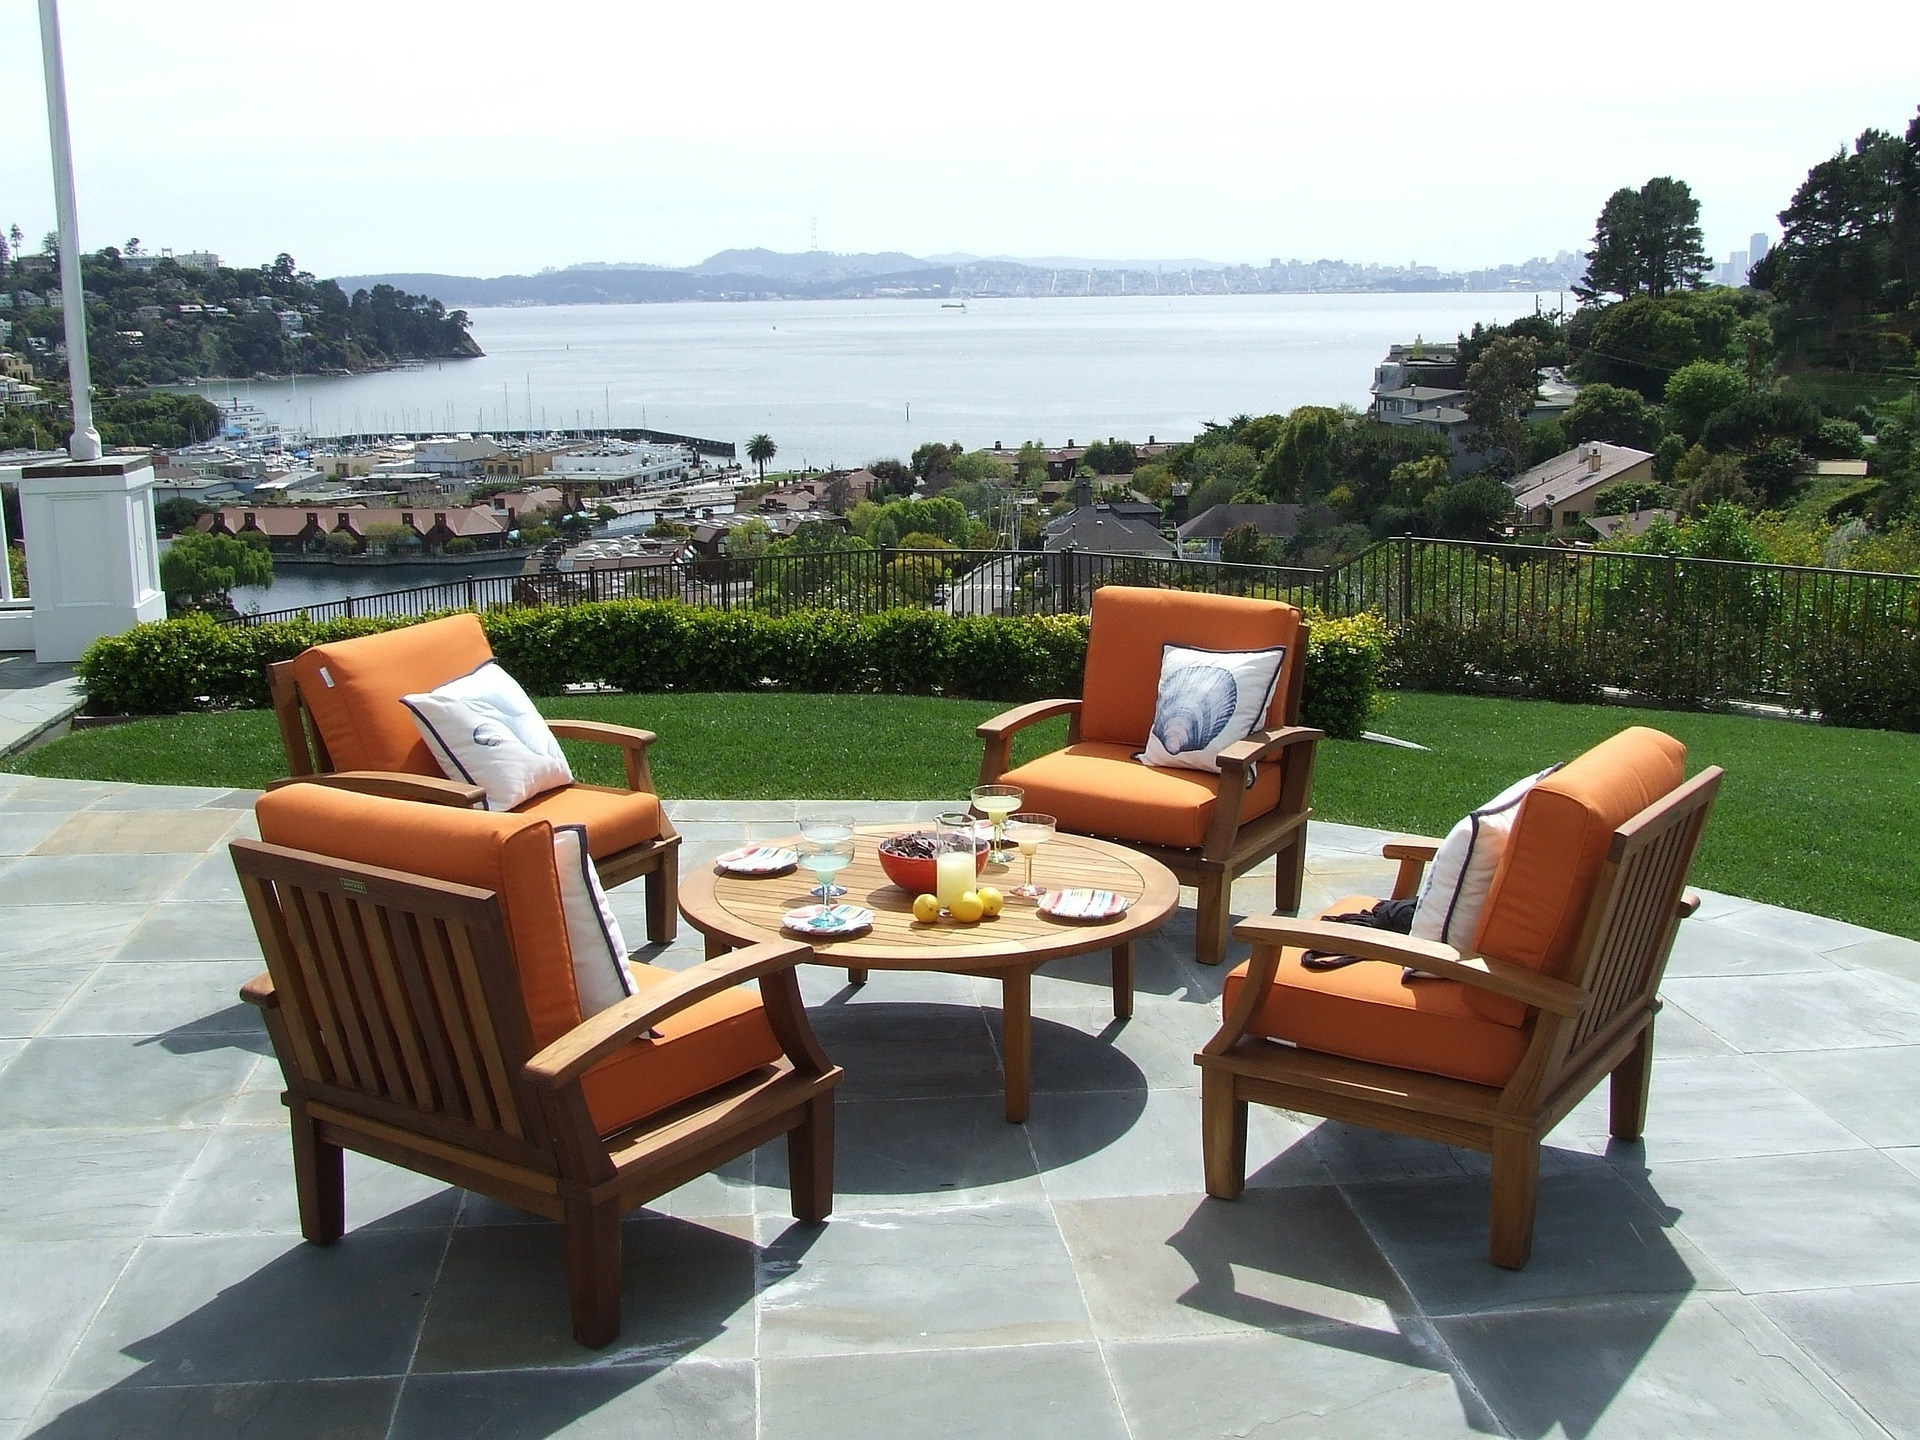 Current Swanky Patio Furniture Things To Consider While Shopping Online Throughout Expensive Patio Umbrellas (View 3 of 20)